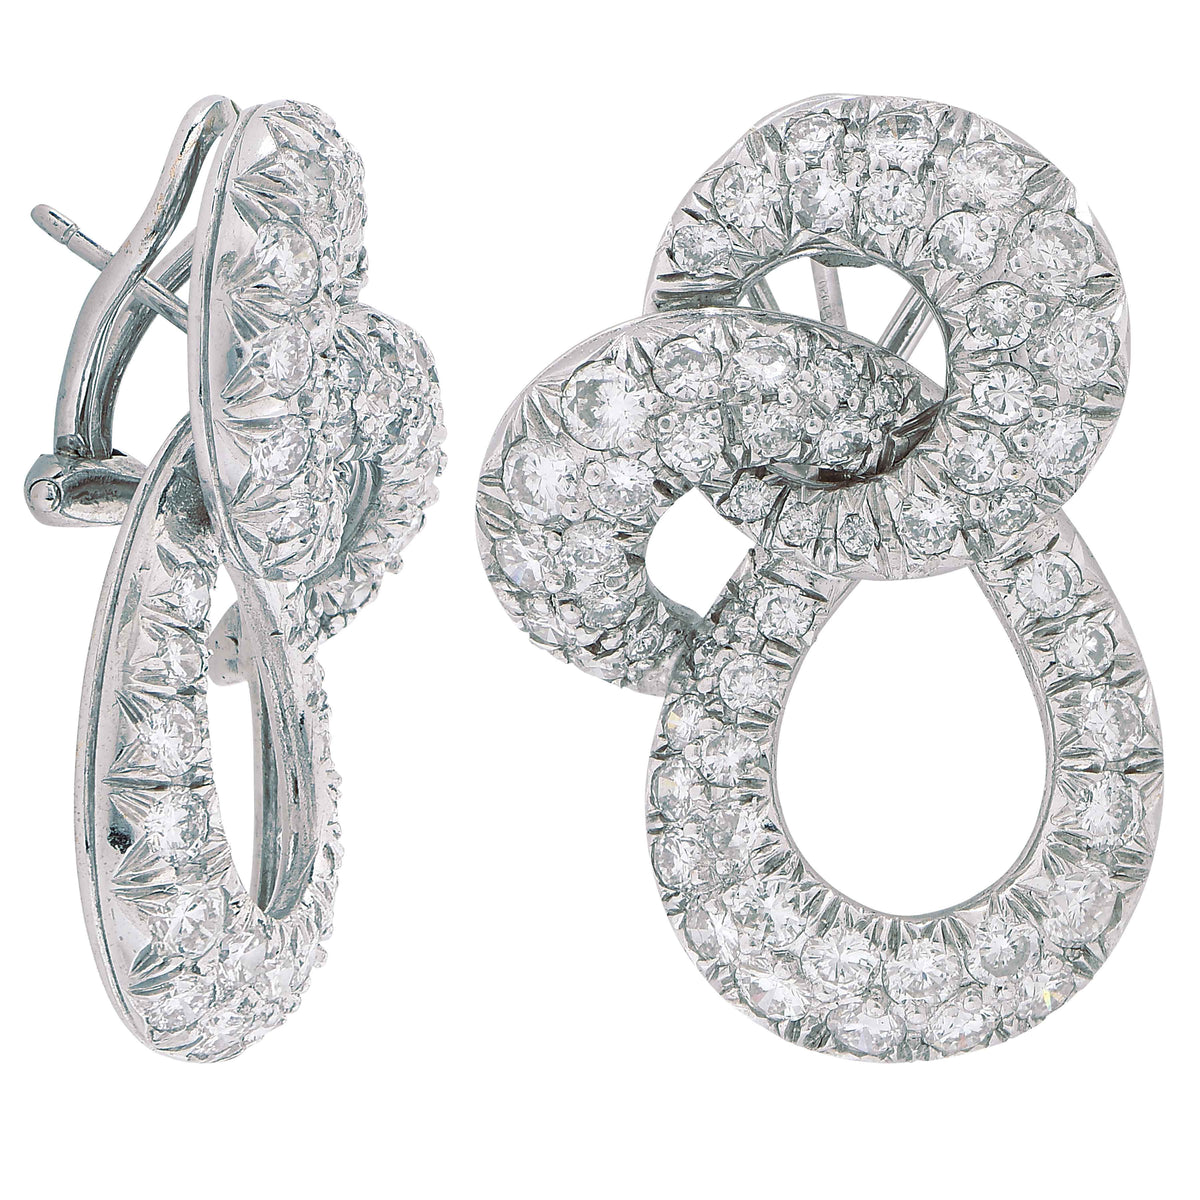 6 Carat Pave Diamond Swirl 18 Karat White Gold Earclips